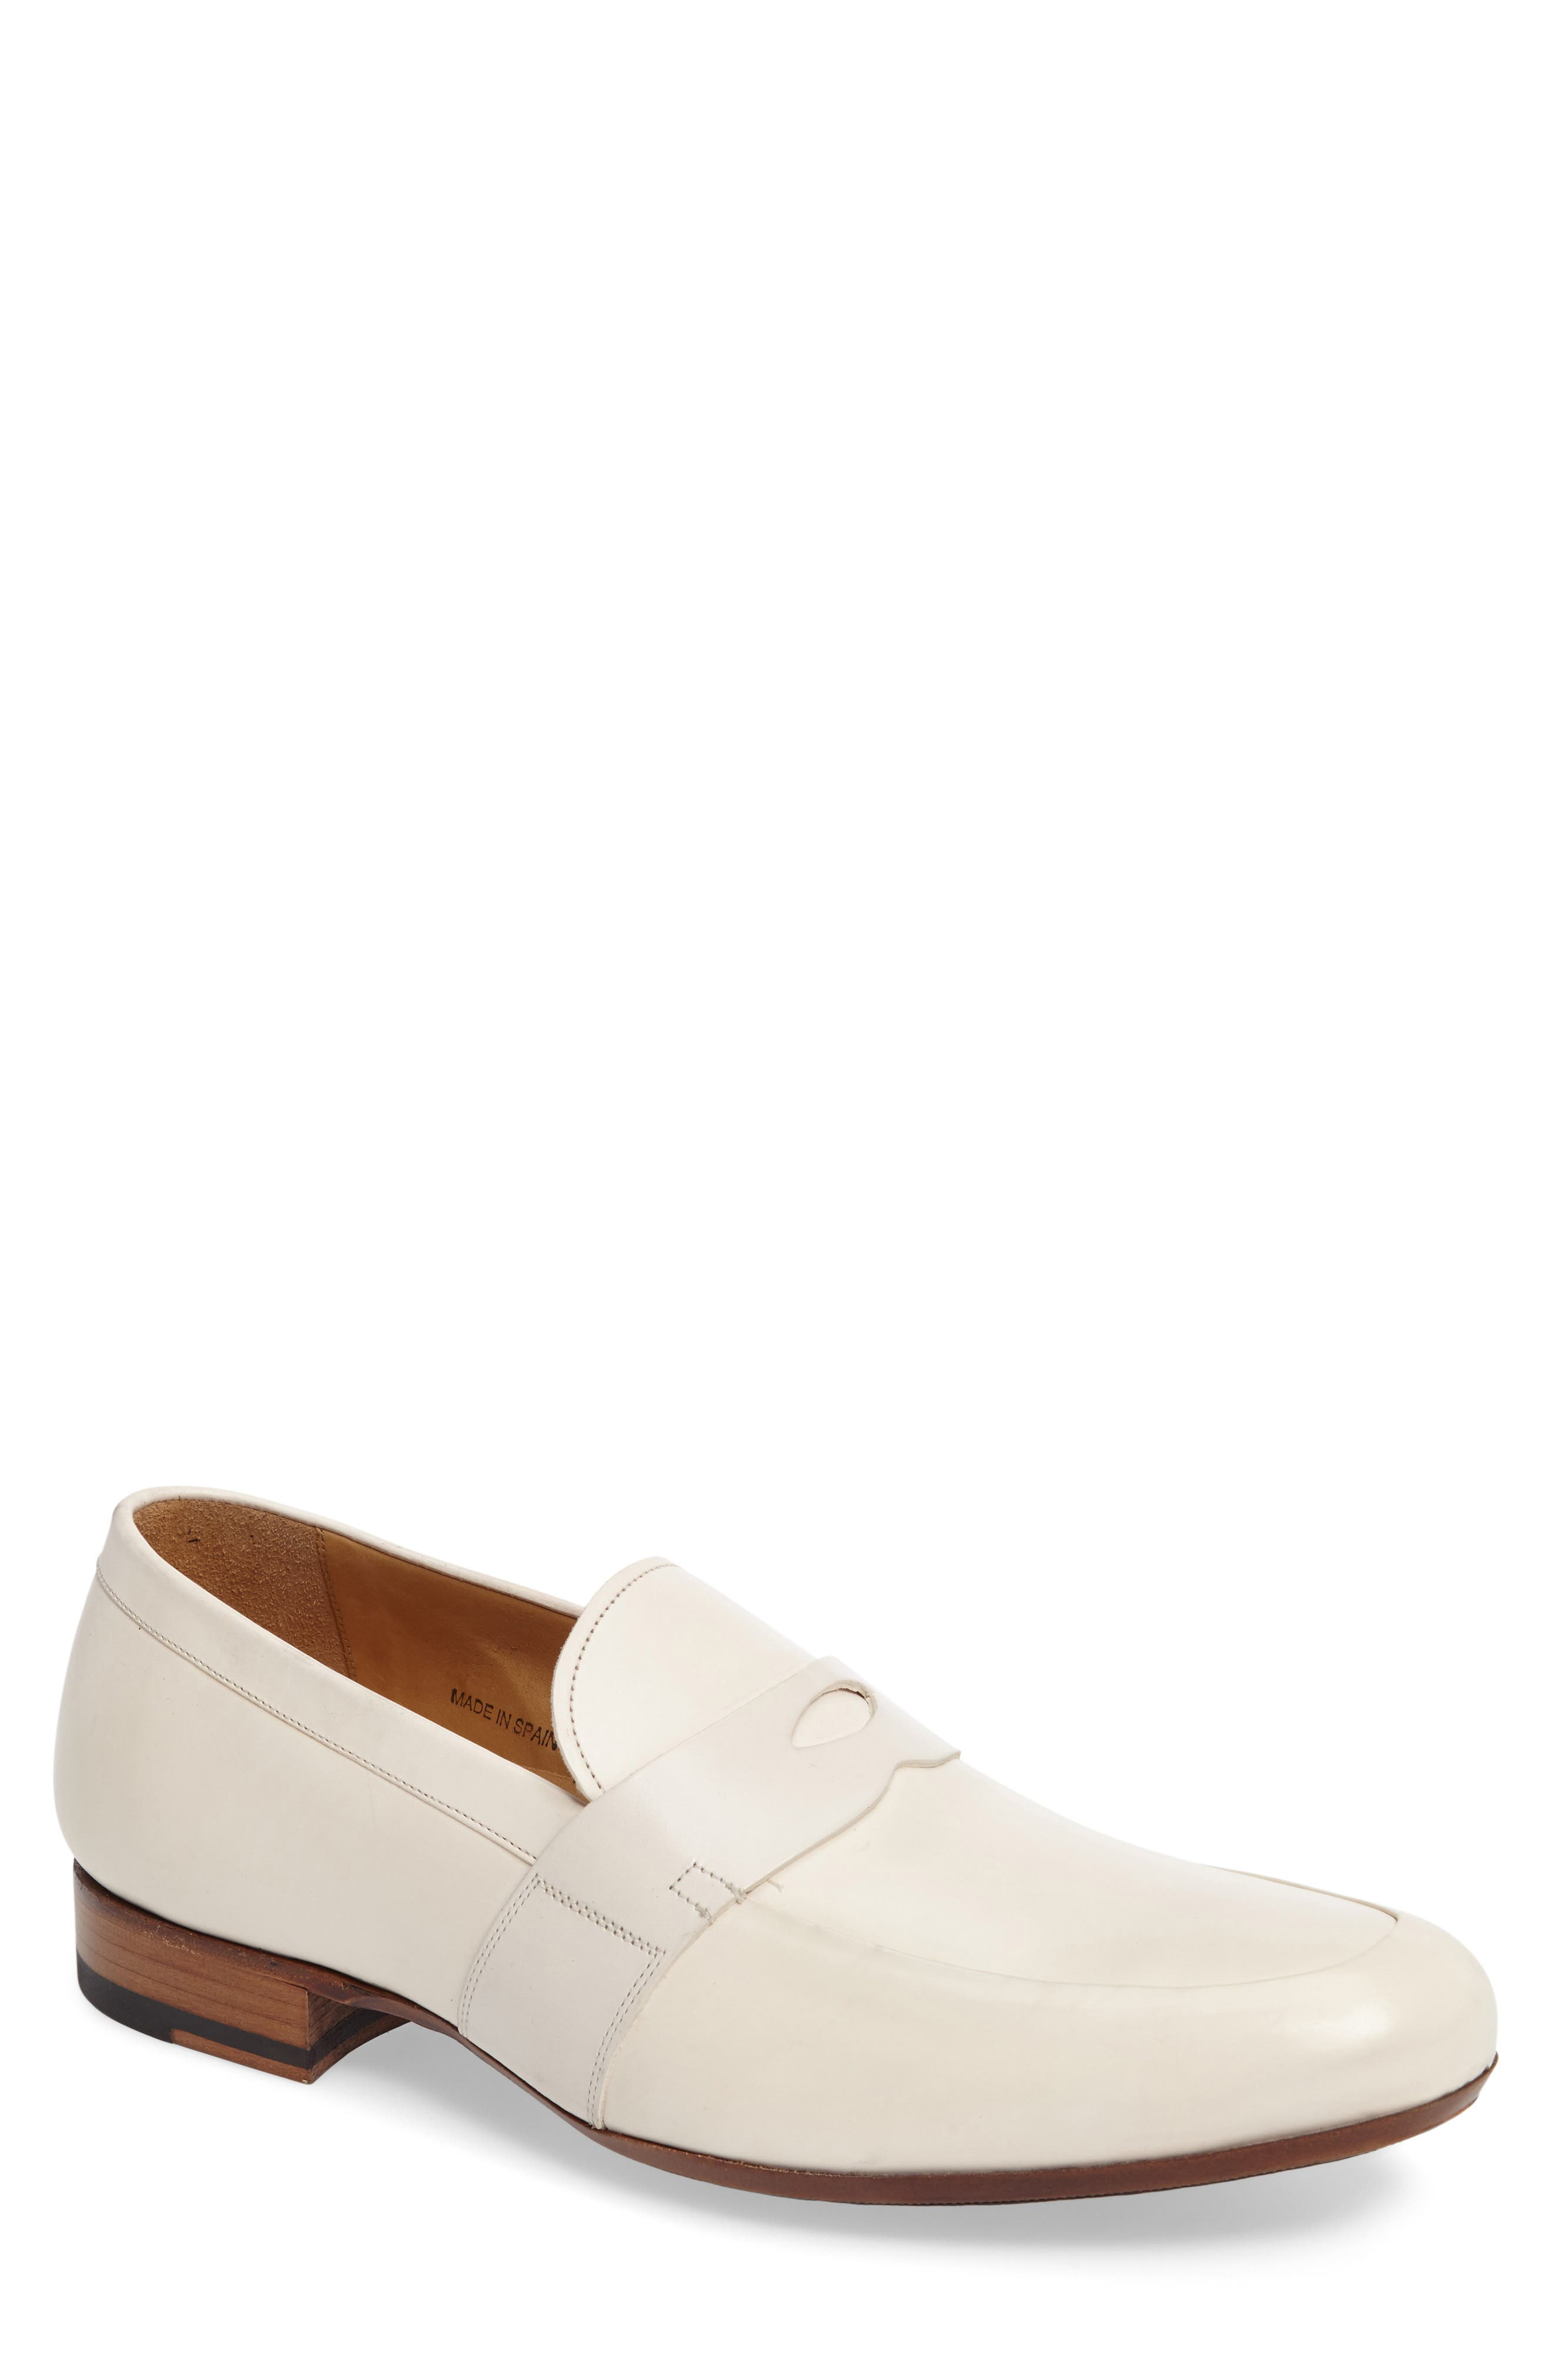 Leopold Penny Loafer,                             Main thumbnail 1, color,                             Bone Leather